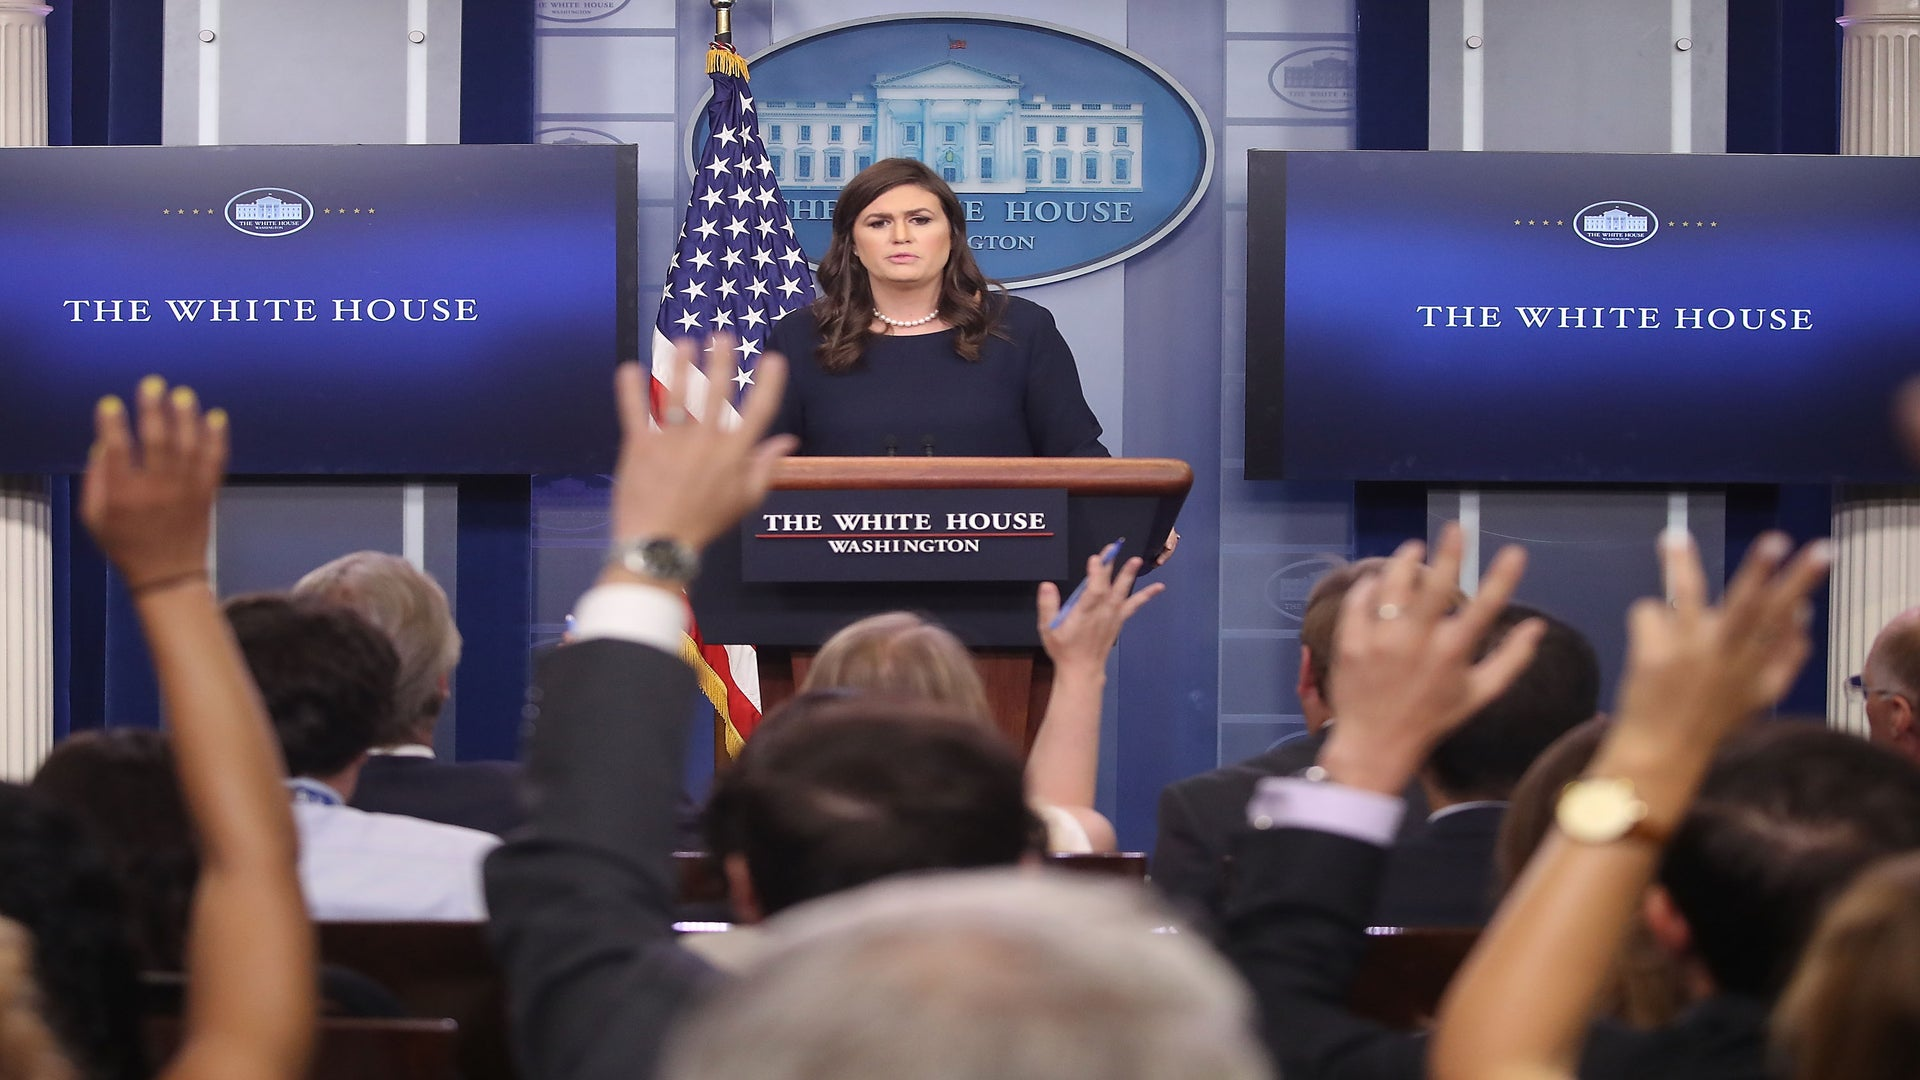 White House Propaganda Hits All Time High As Press Secretary Reads Fan Mail During Briefing